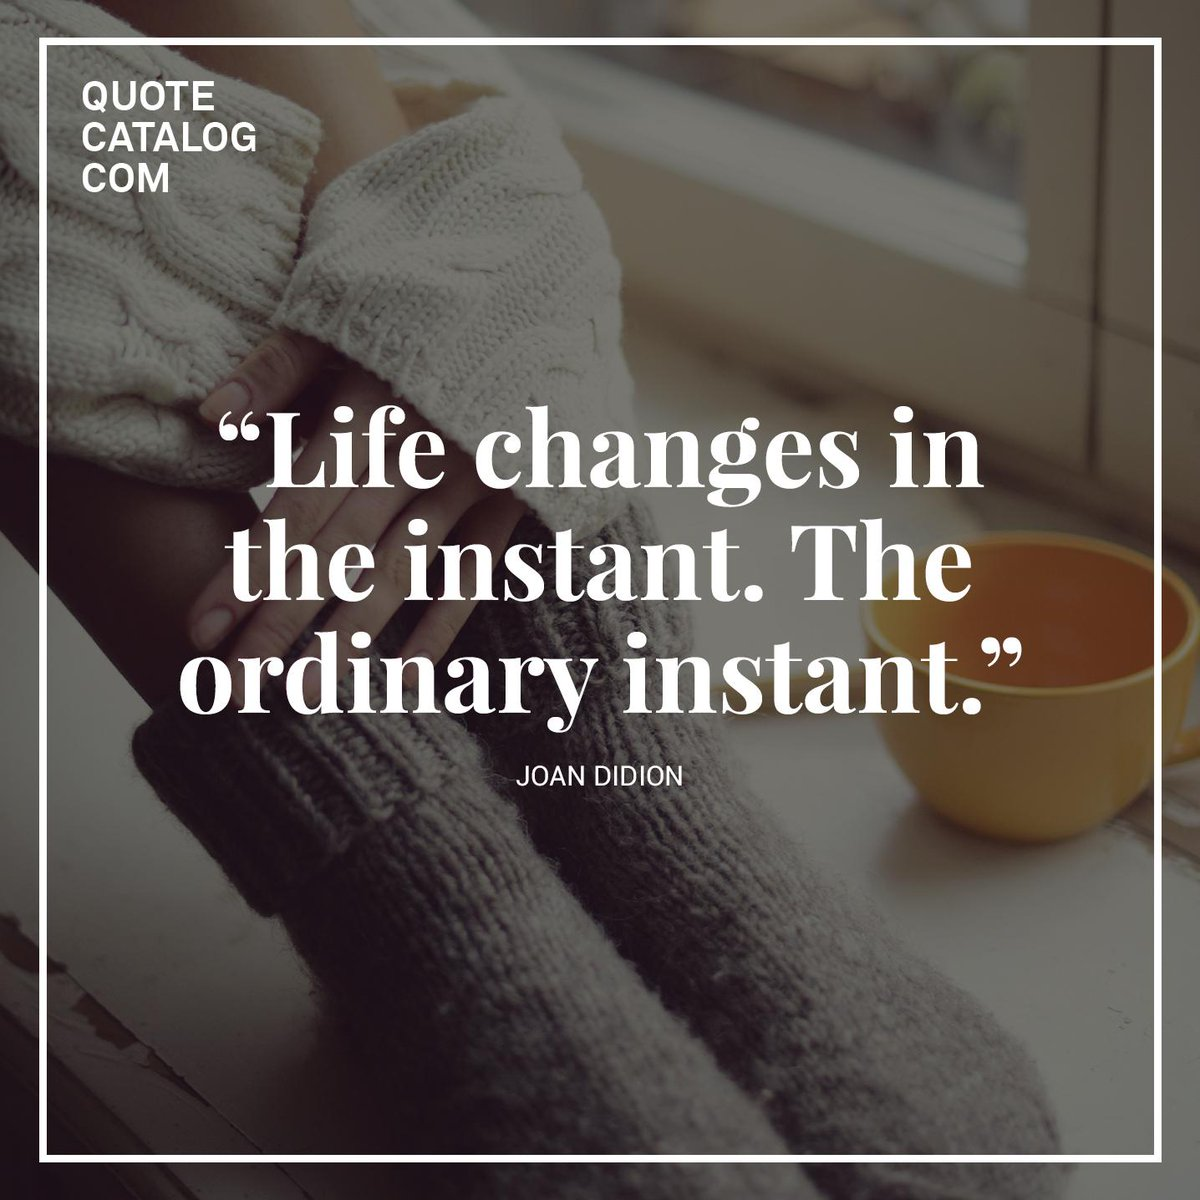 Quote Catalog On Twitter Life Changes In The Instant The